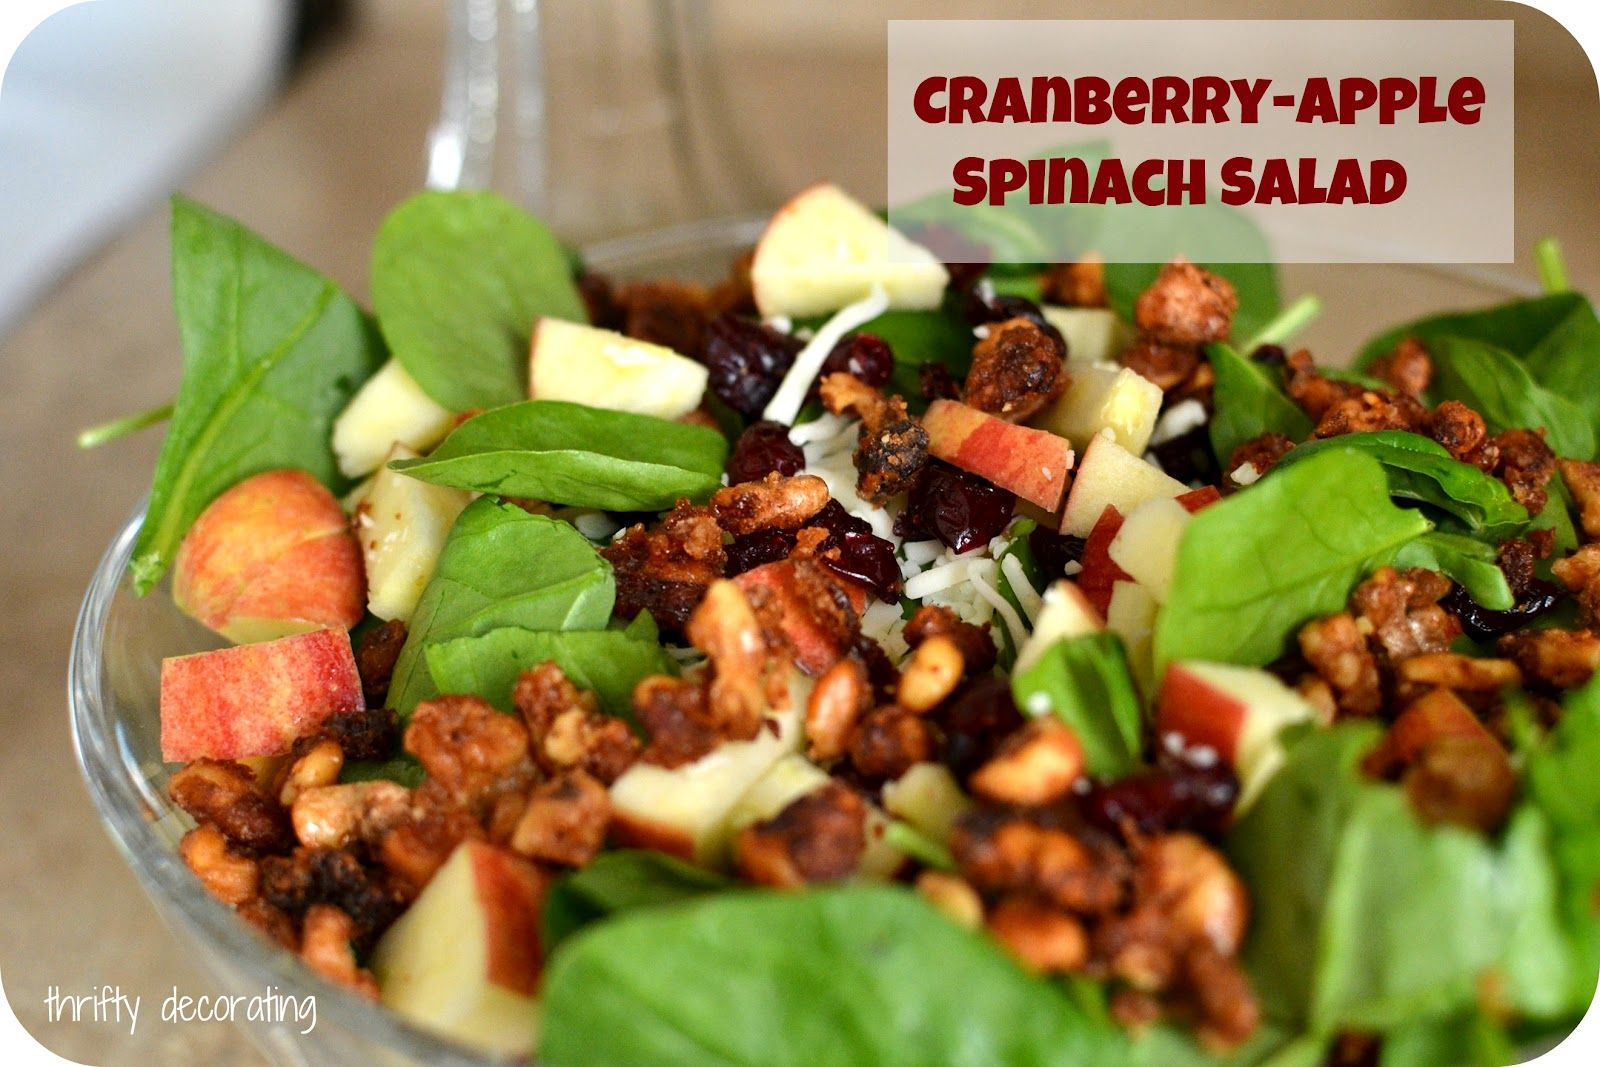 Thrifty Decorating: Cranberry-Apple Spinach Salad